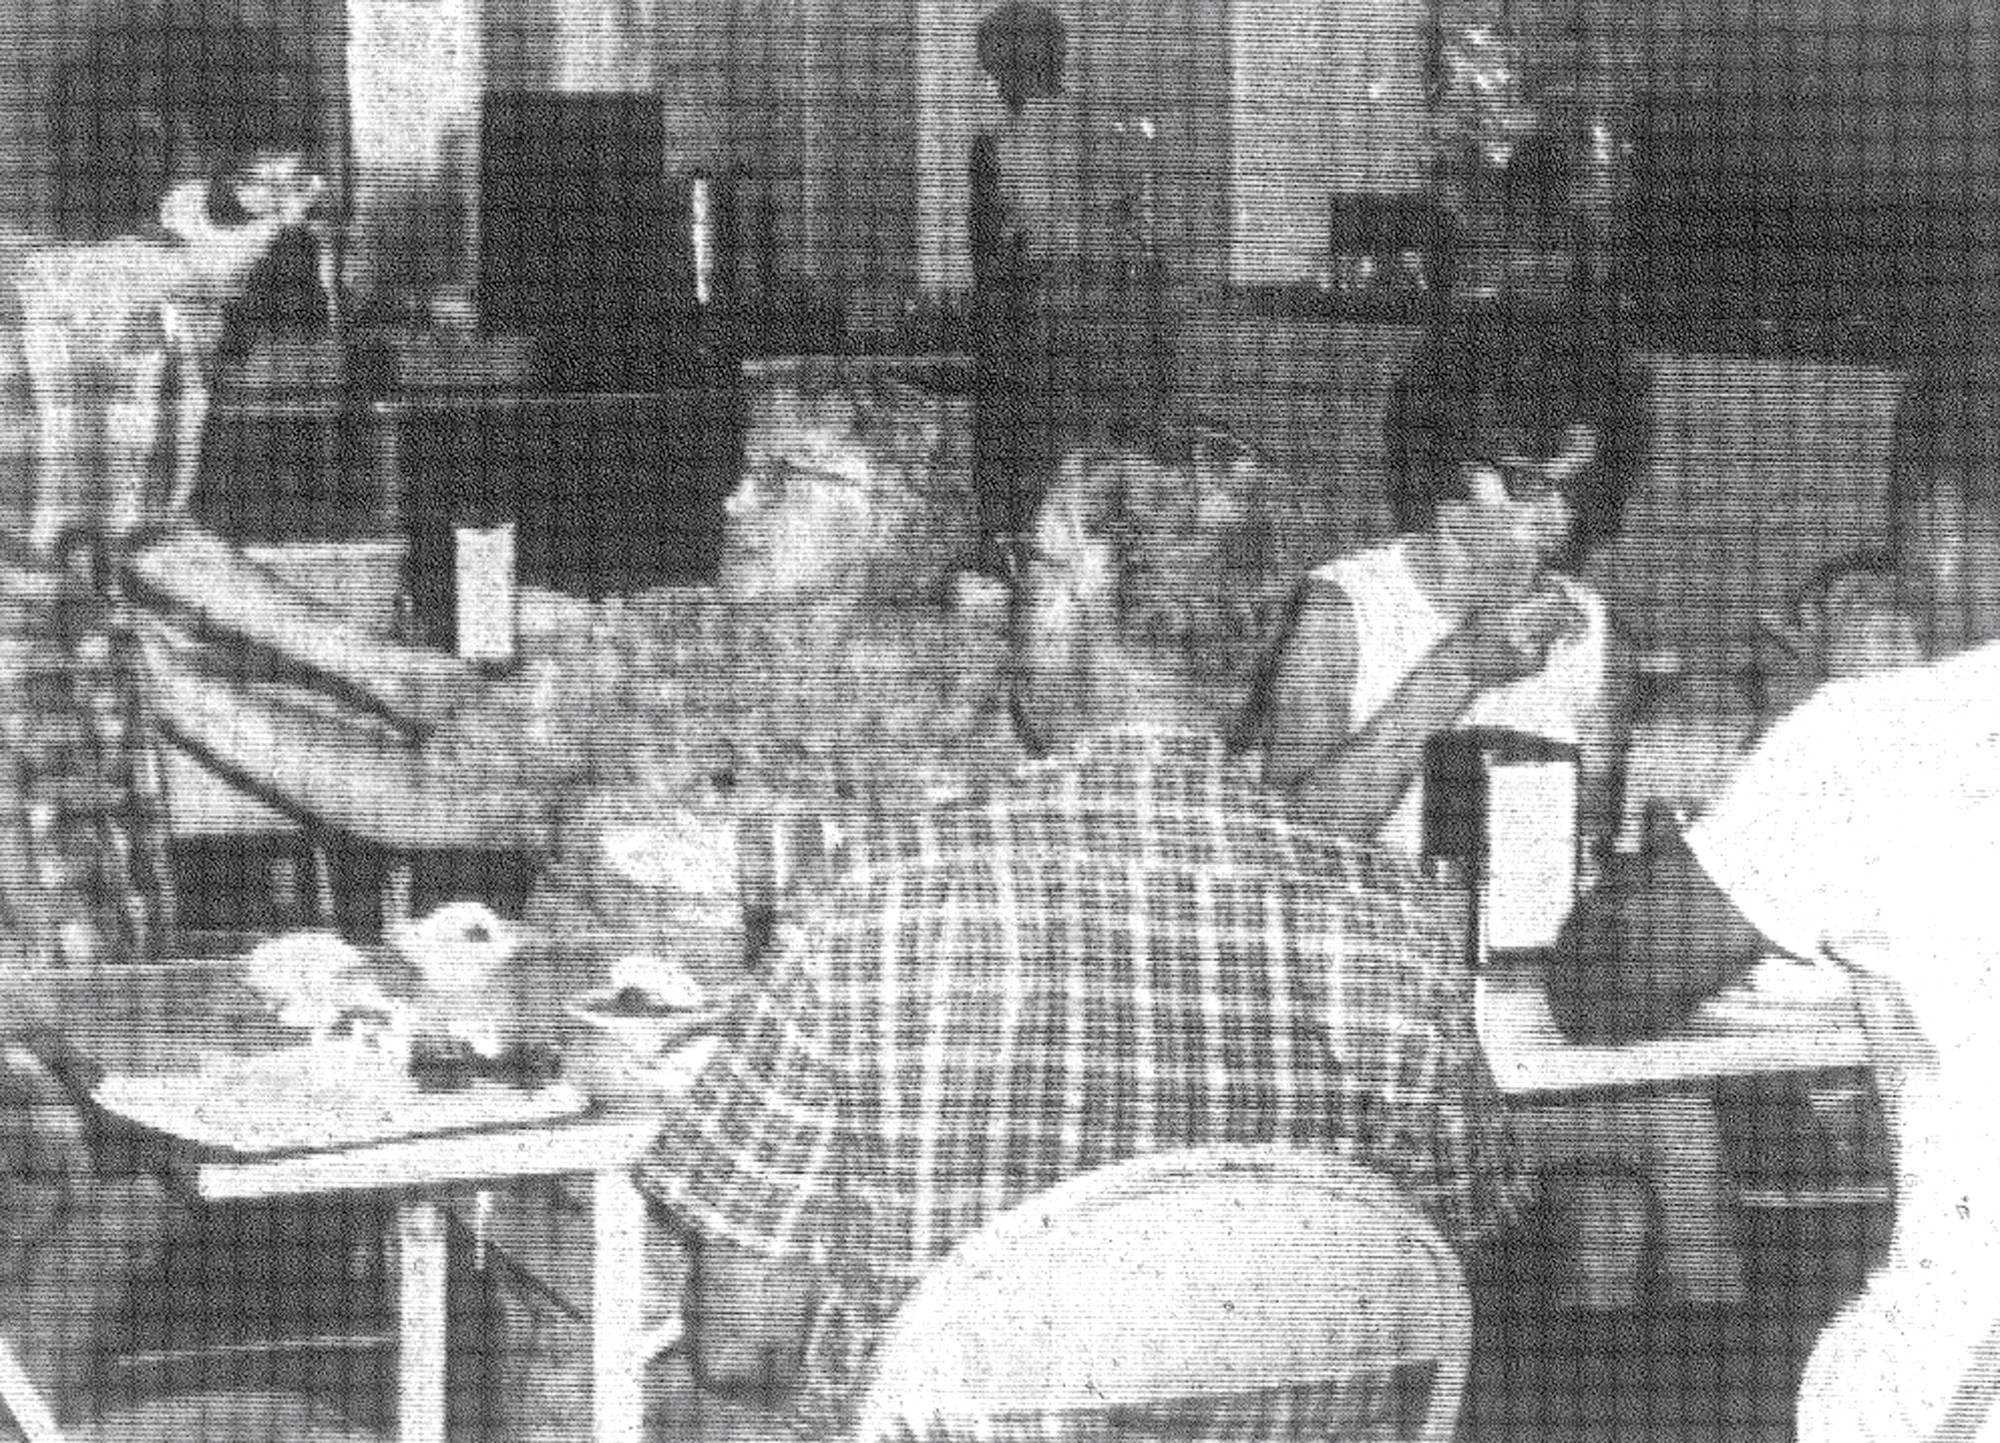 1968 - The dining room at Camp Harmony, 12 miles east of Manning, was noted for its delicious meals. Mr. and Mrs. Tom Burgess Sr. were camp overseers.